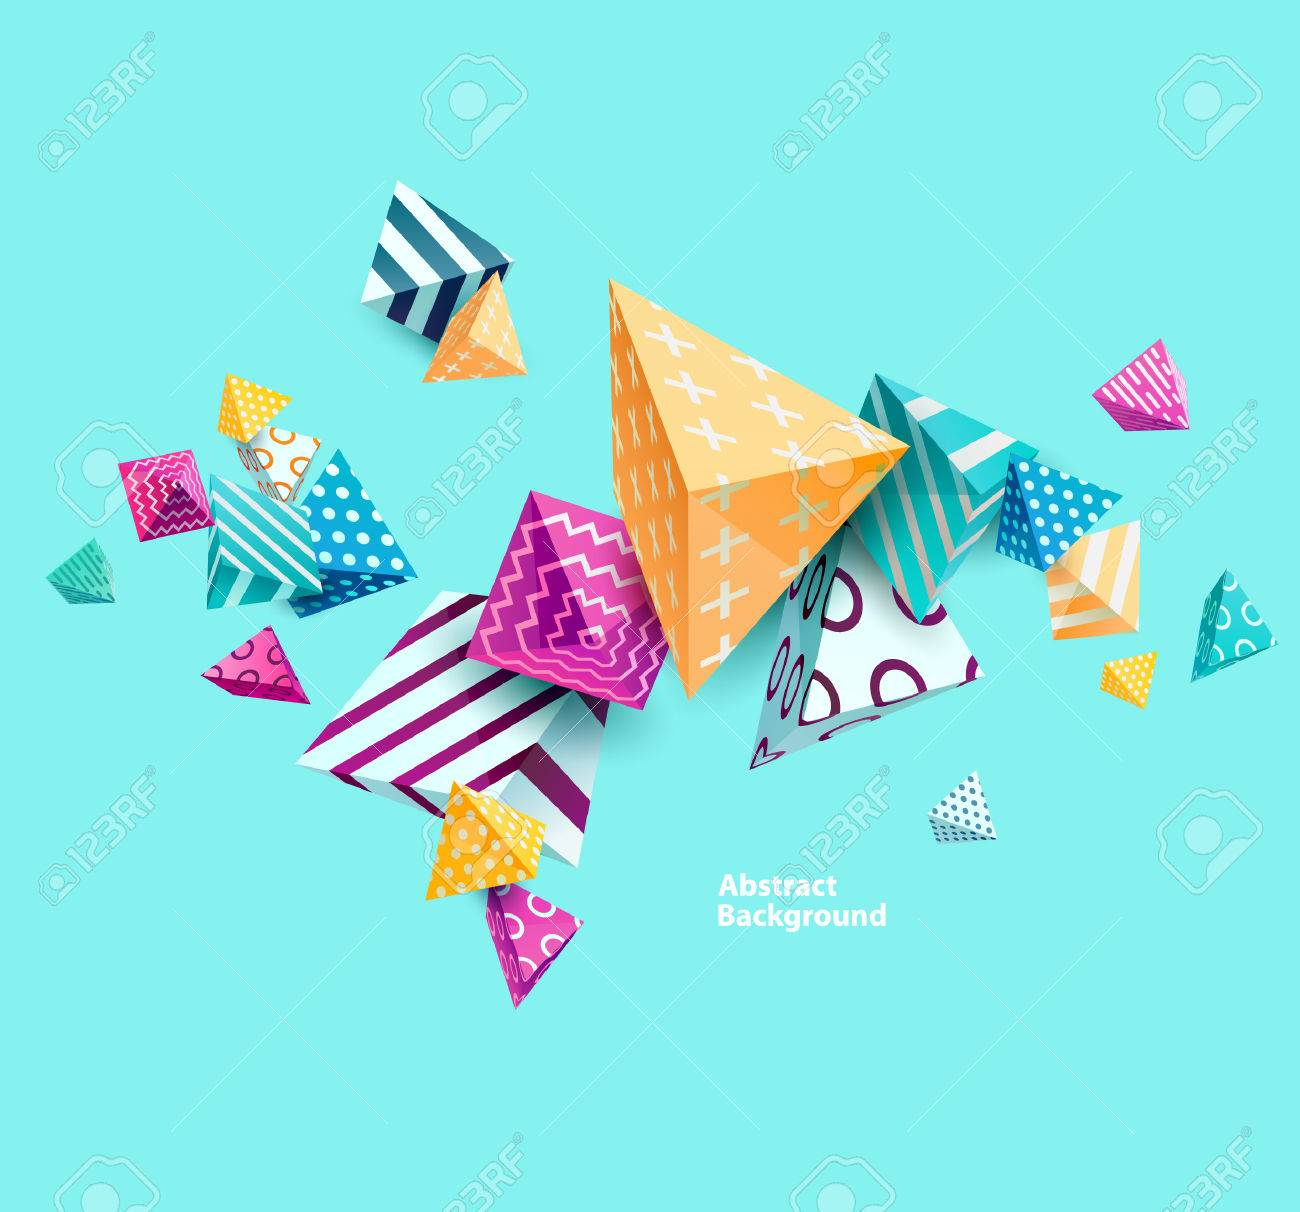 Abstract colorful background with geometric elements - 57569723